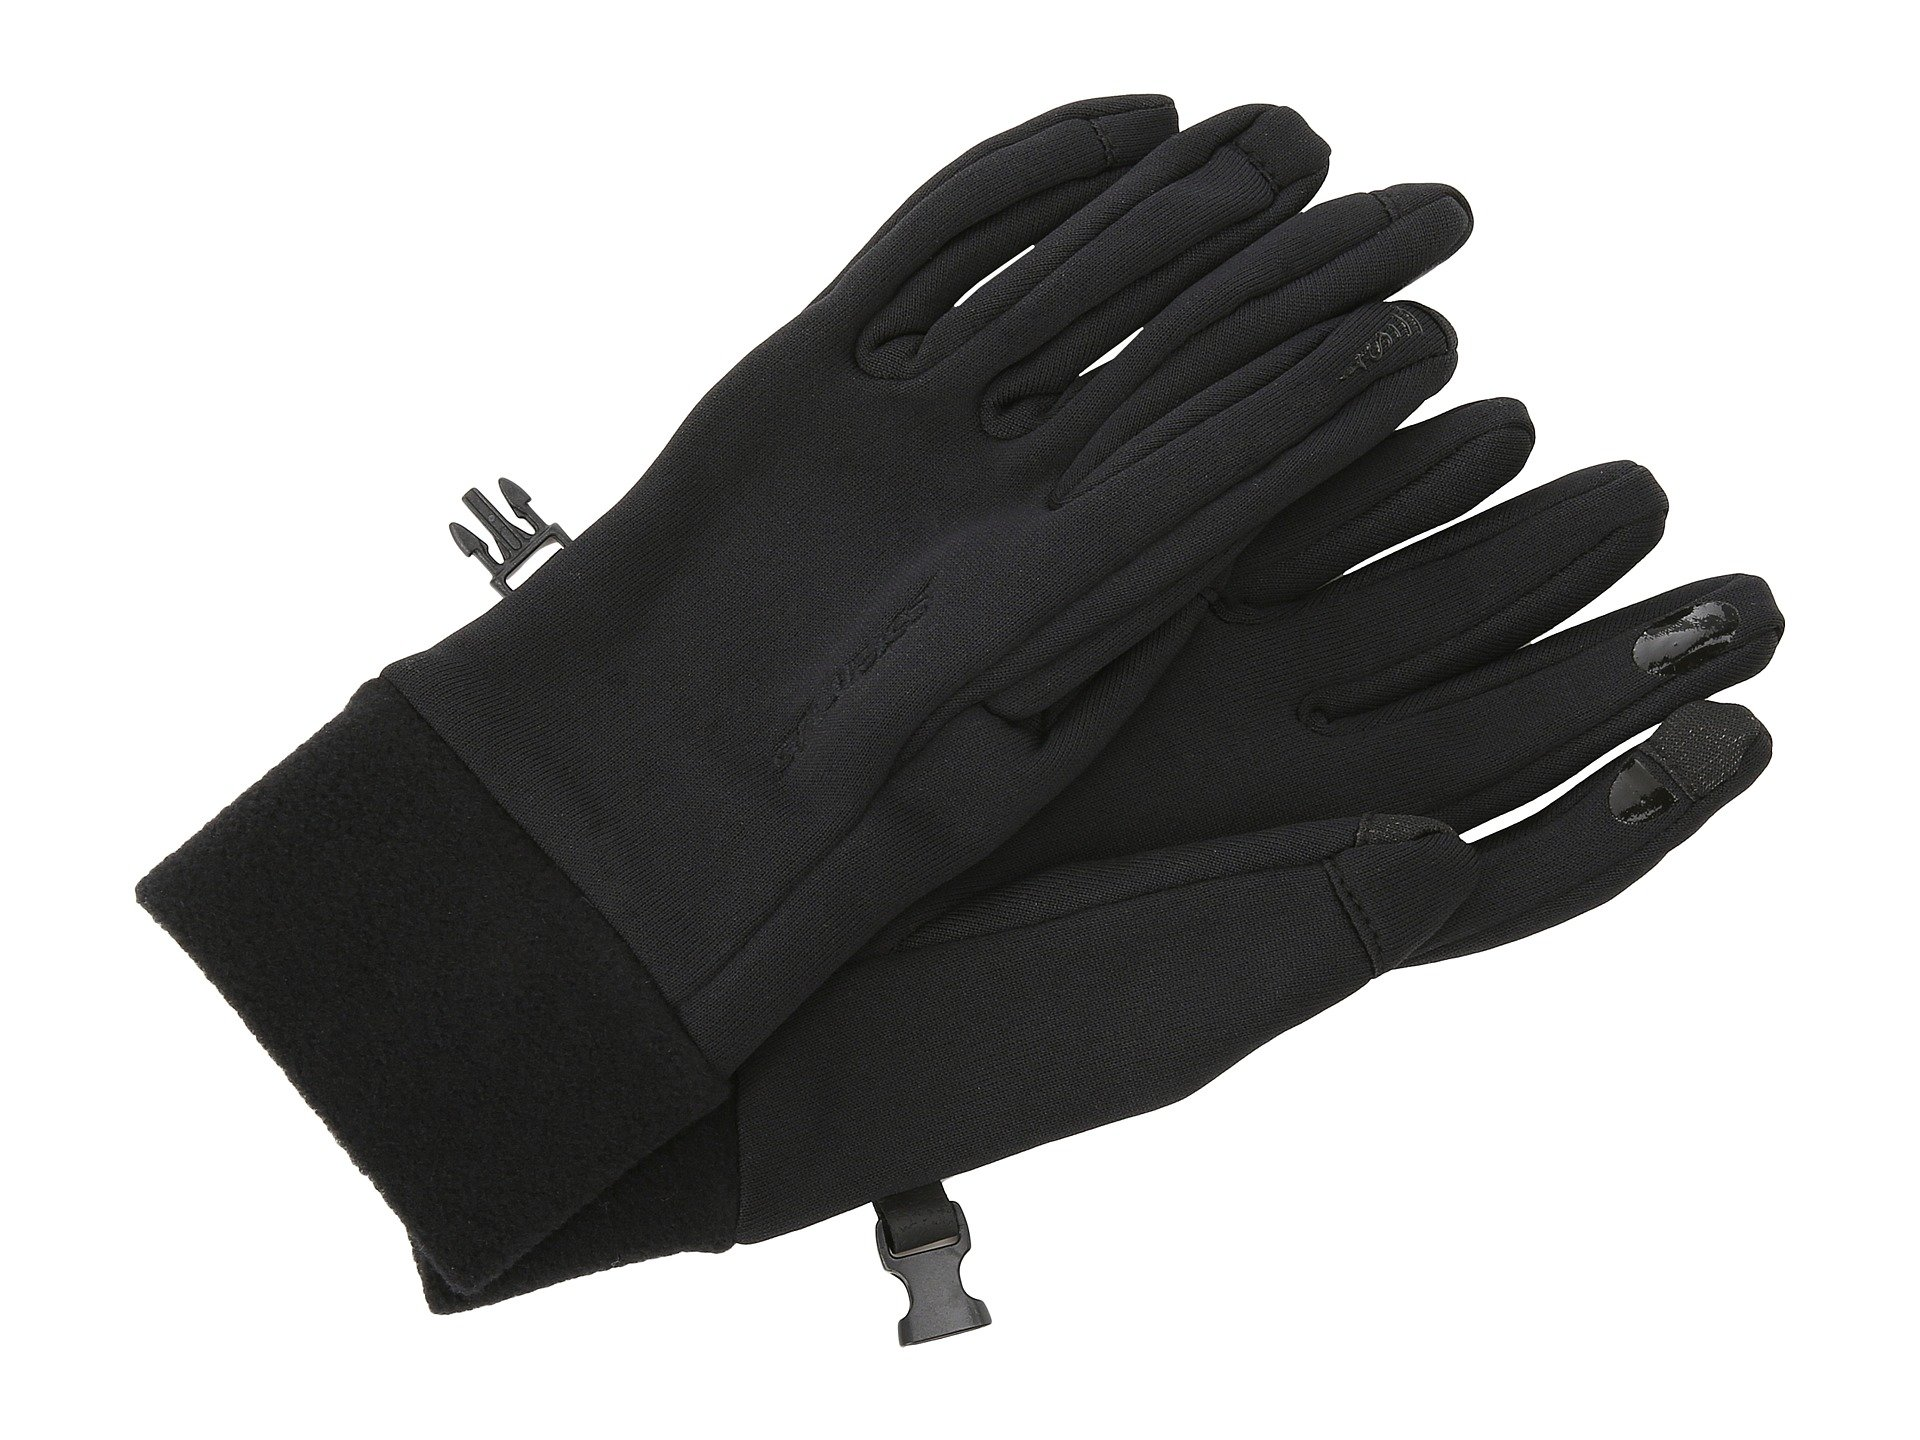 Seirus Soundtouch Powerstretch Glove Liner Black Running Gloves 8253672